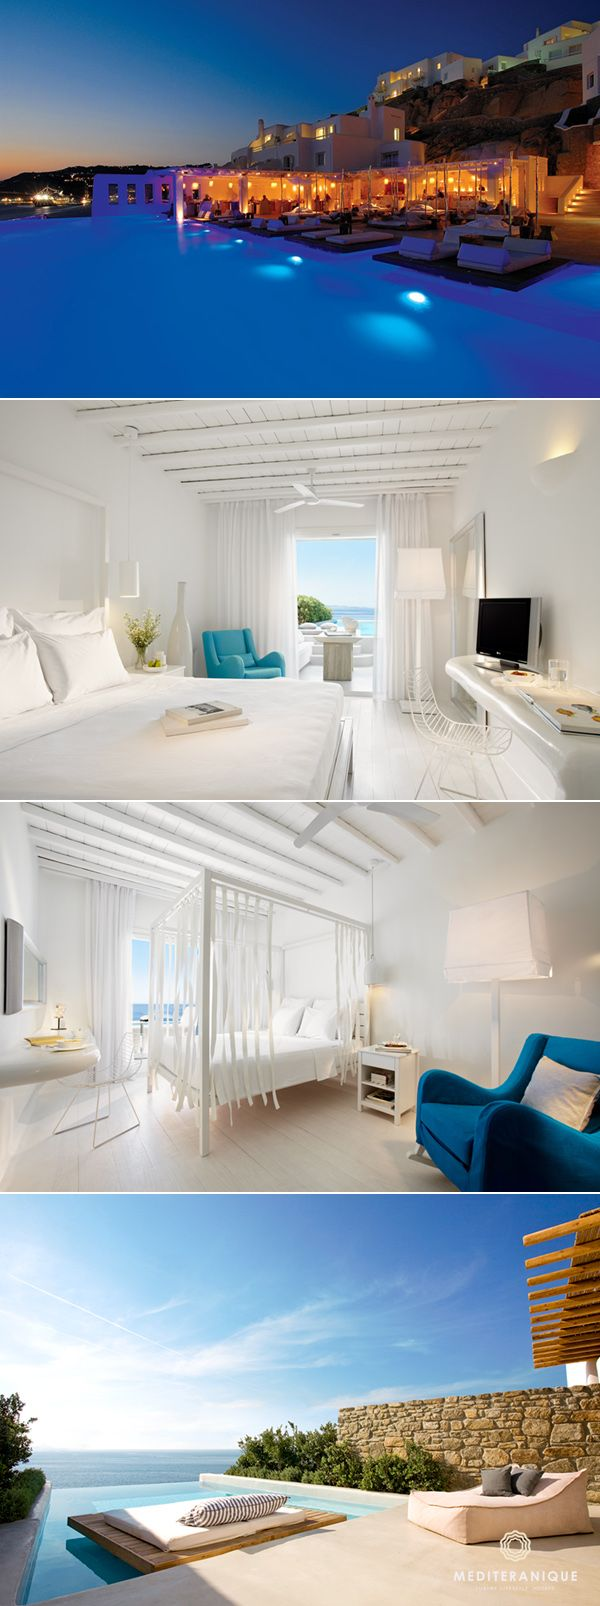 The Cavo Tagoo Hotel in Mykonos, one of the most incredible boutique hotels in Greece.